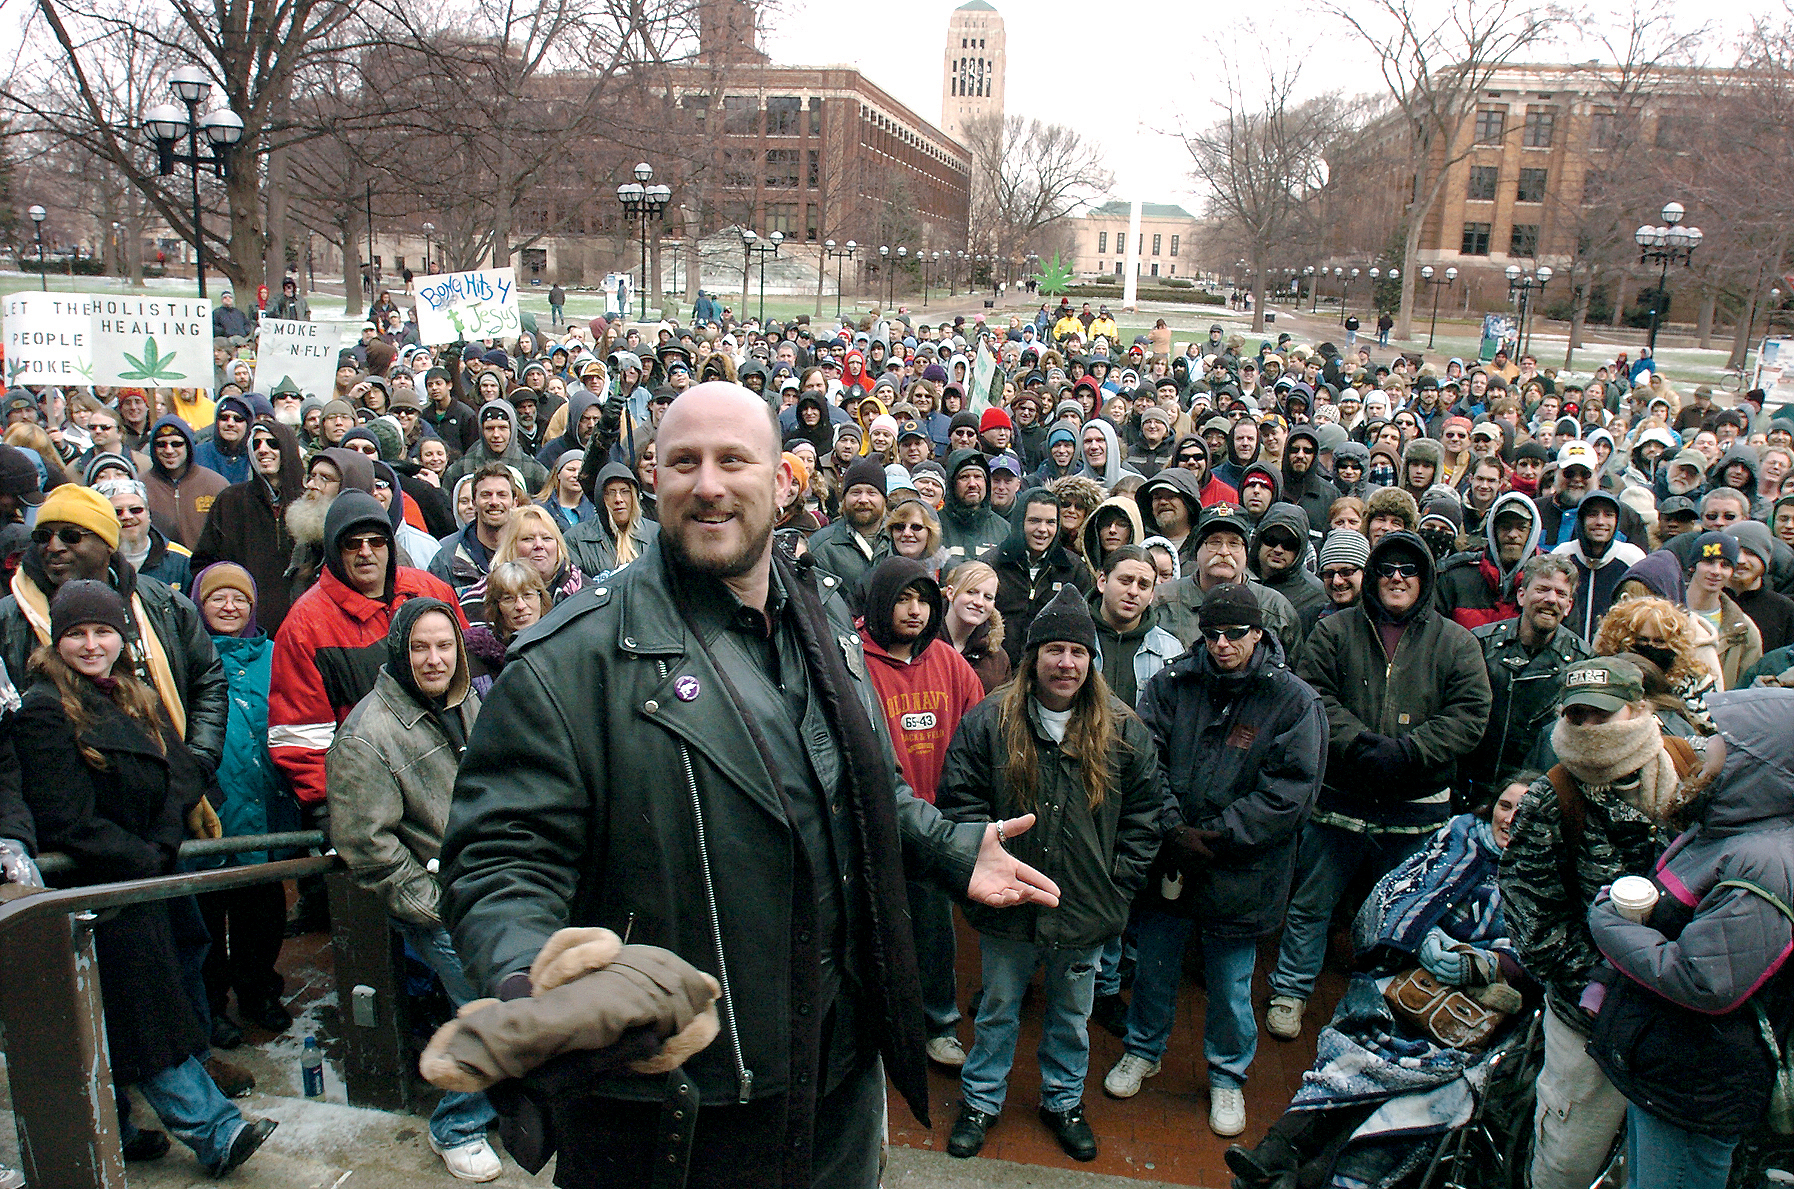 Adam Brook, Hash Bash Organizer, April 8, 2007 image